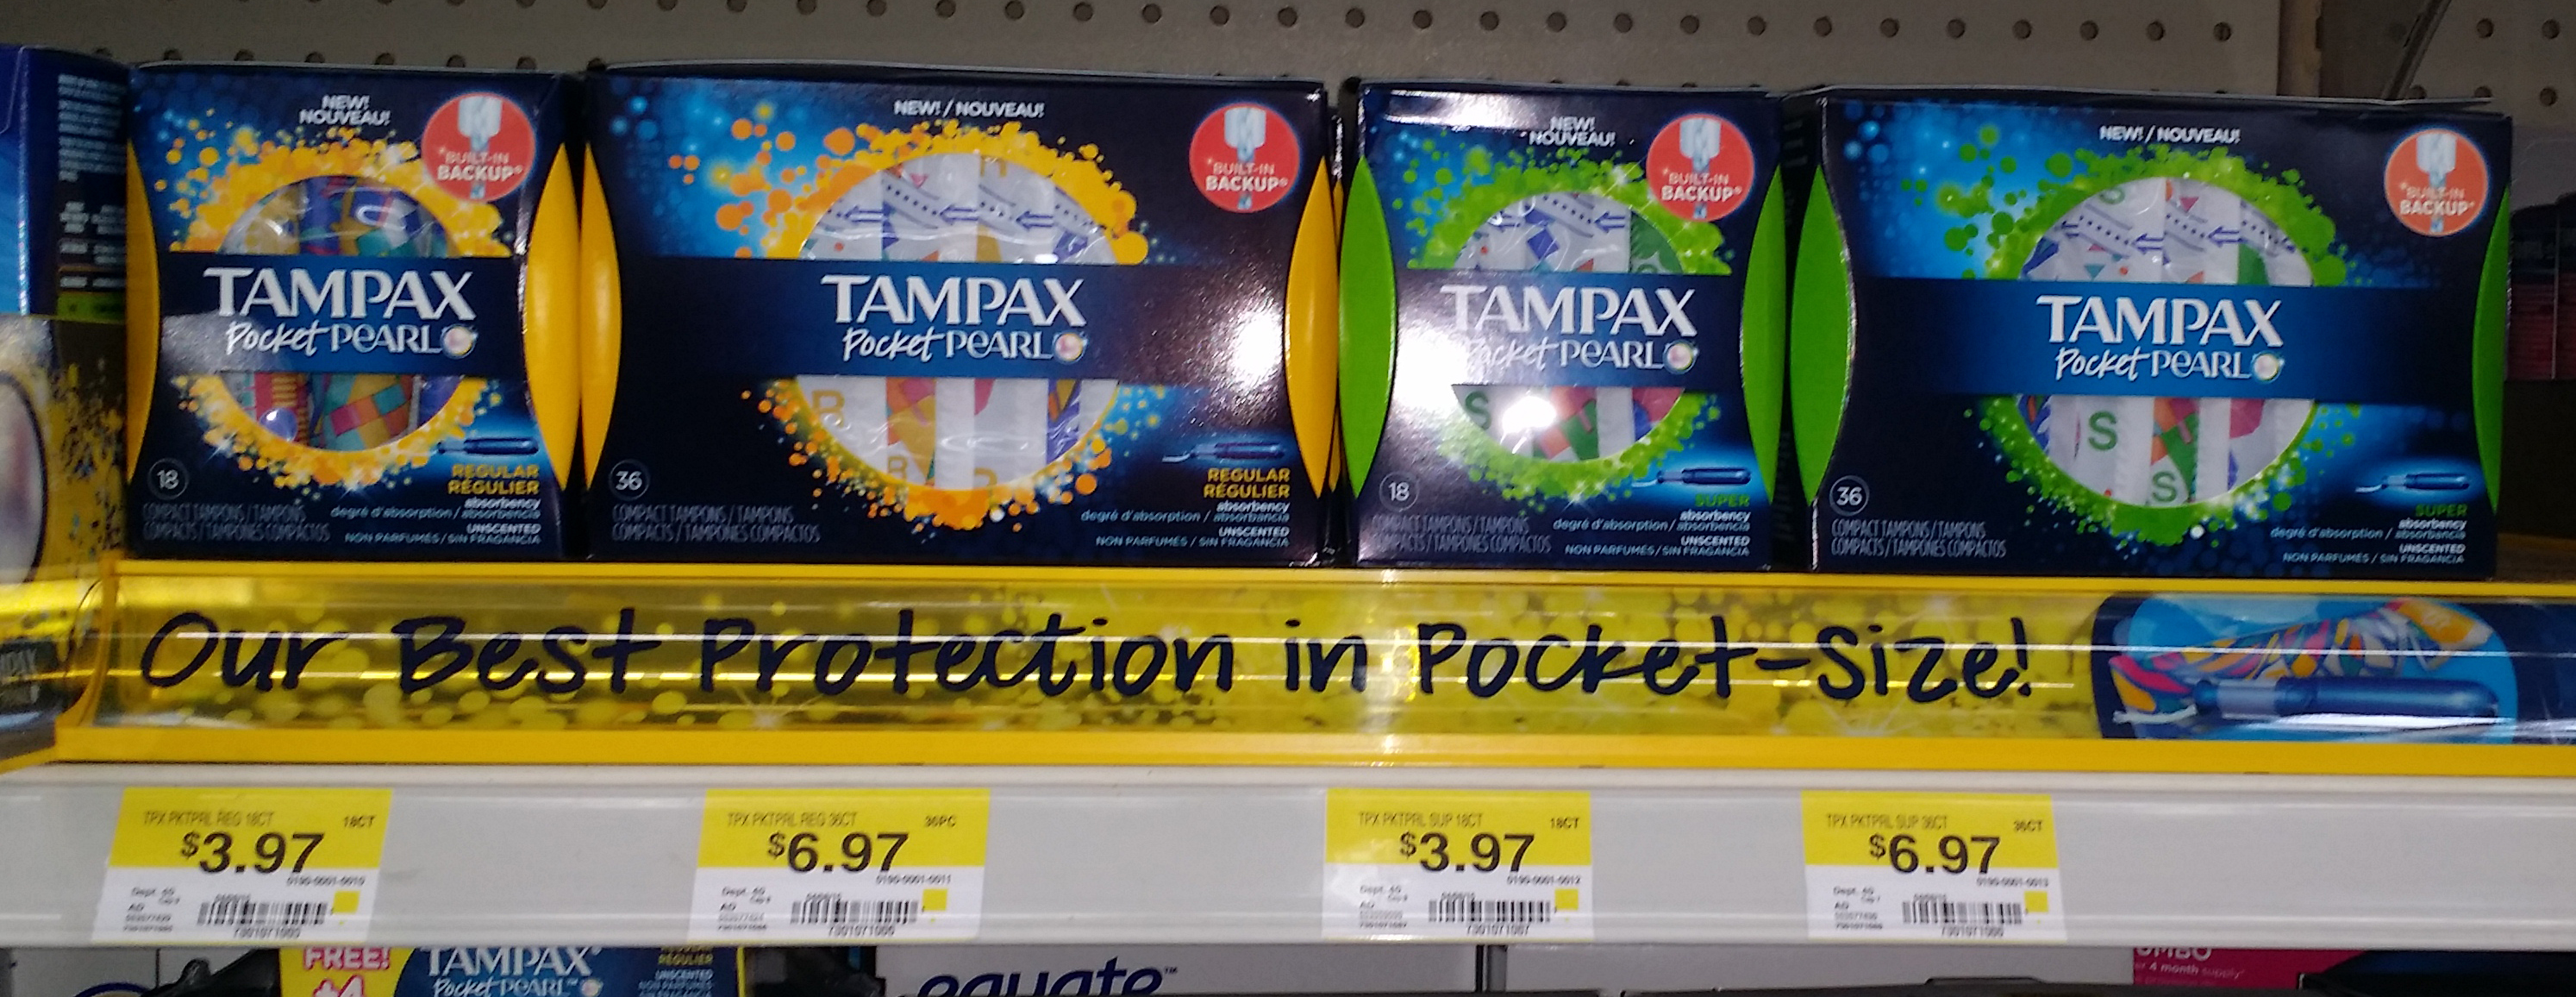 Thumbnail image for Tampax Pearl Products Just $2.72 at Walmart!